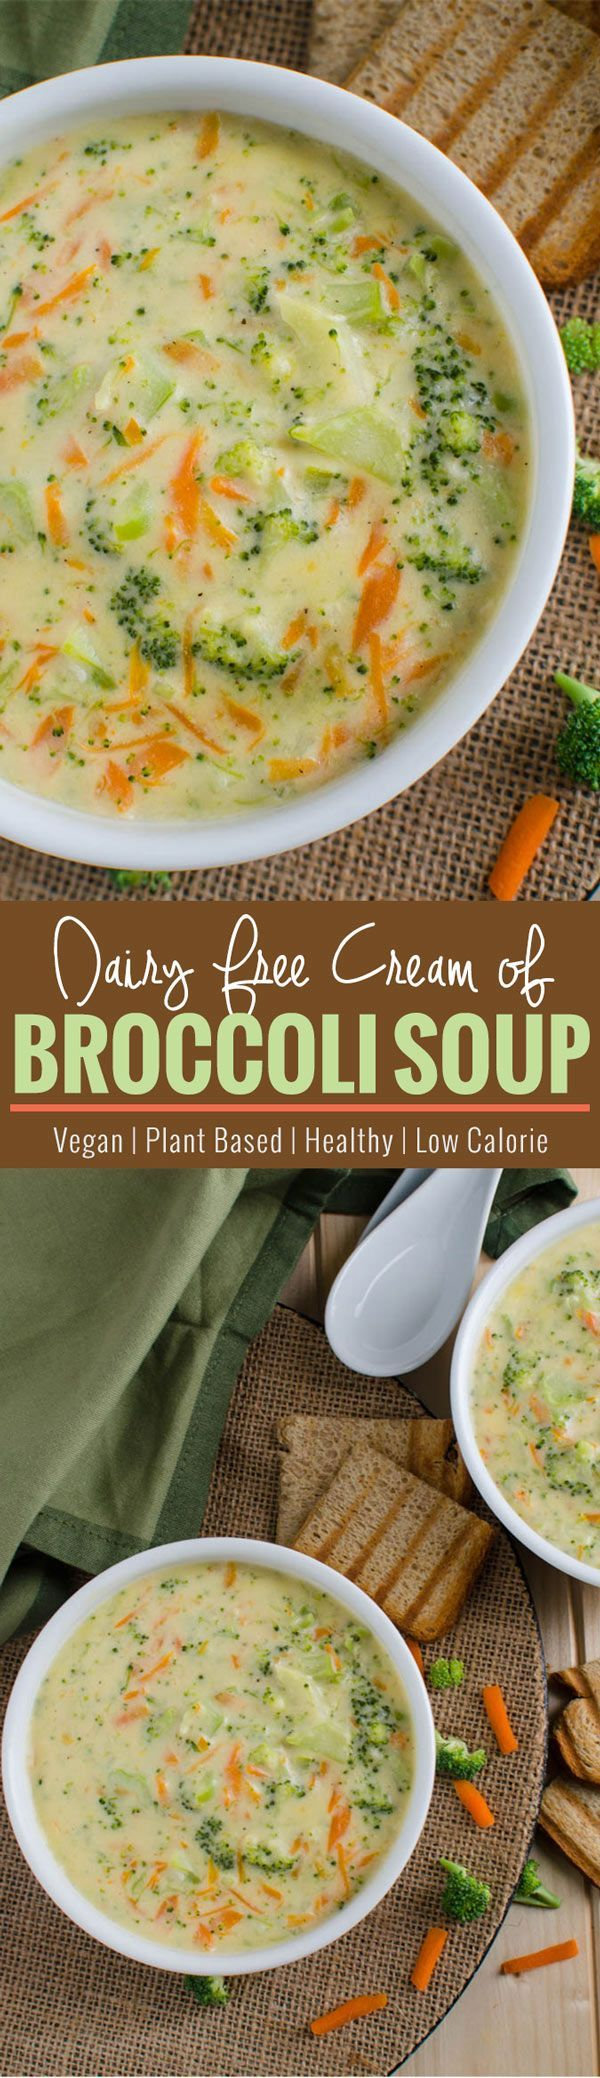 Healthy broccoli soup - prepared using all healthy & clean ingredients. It is also vegan, plant based and a low calorie soup. | watchehatueat.com